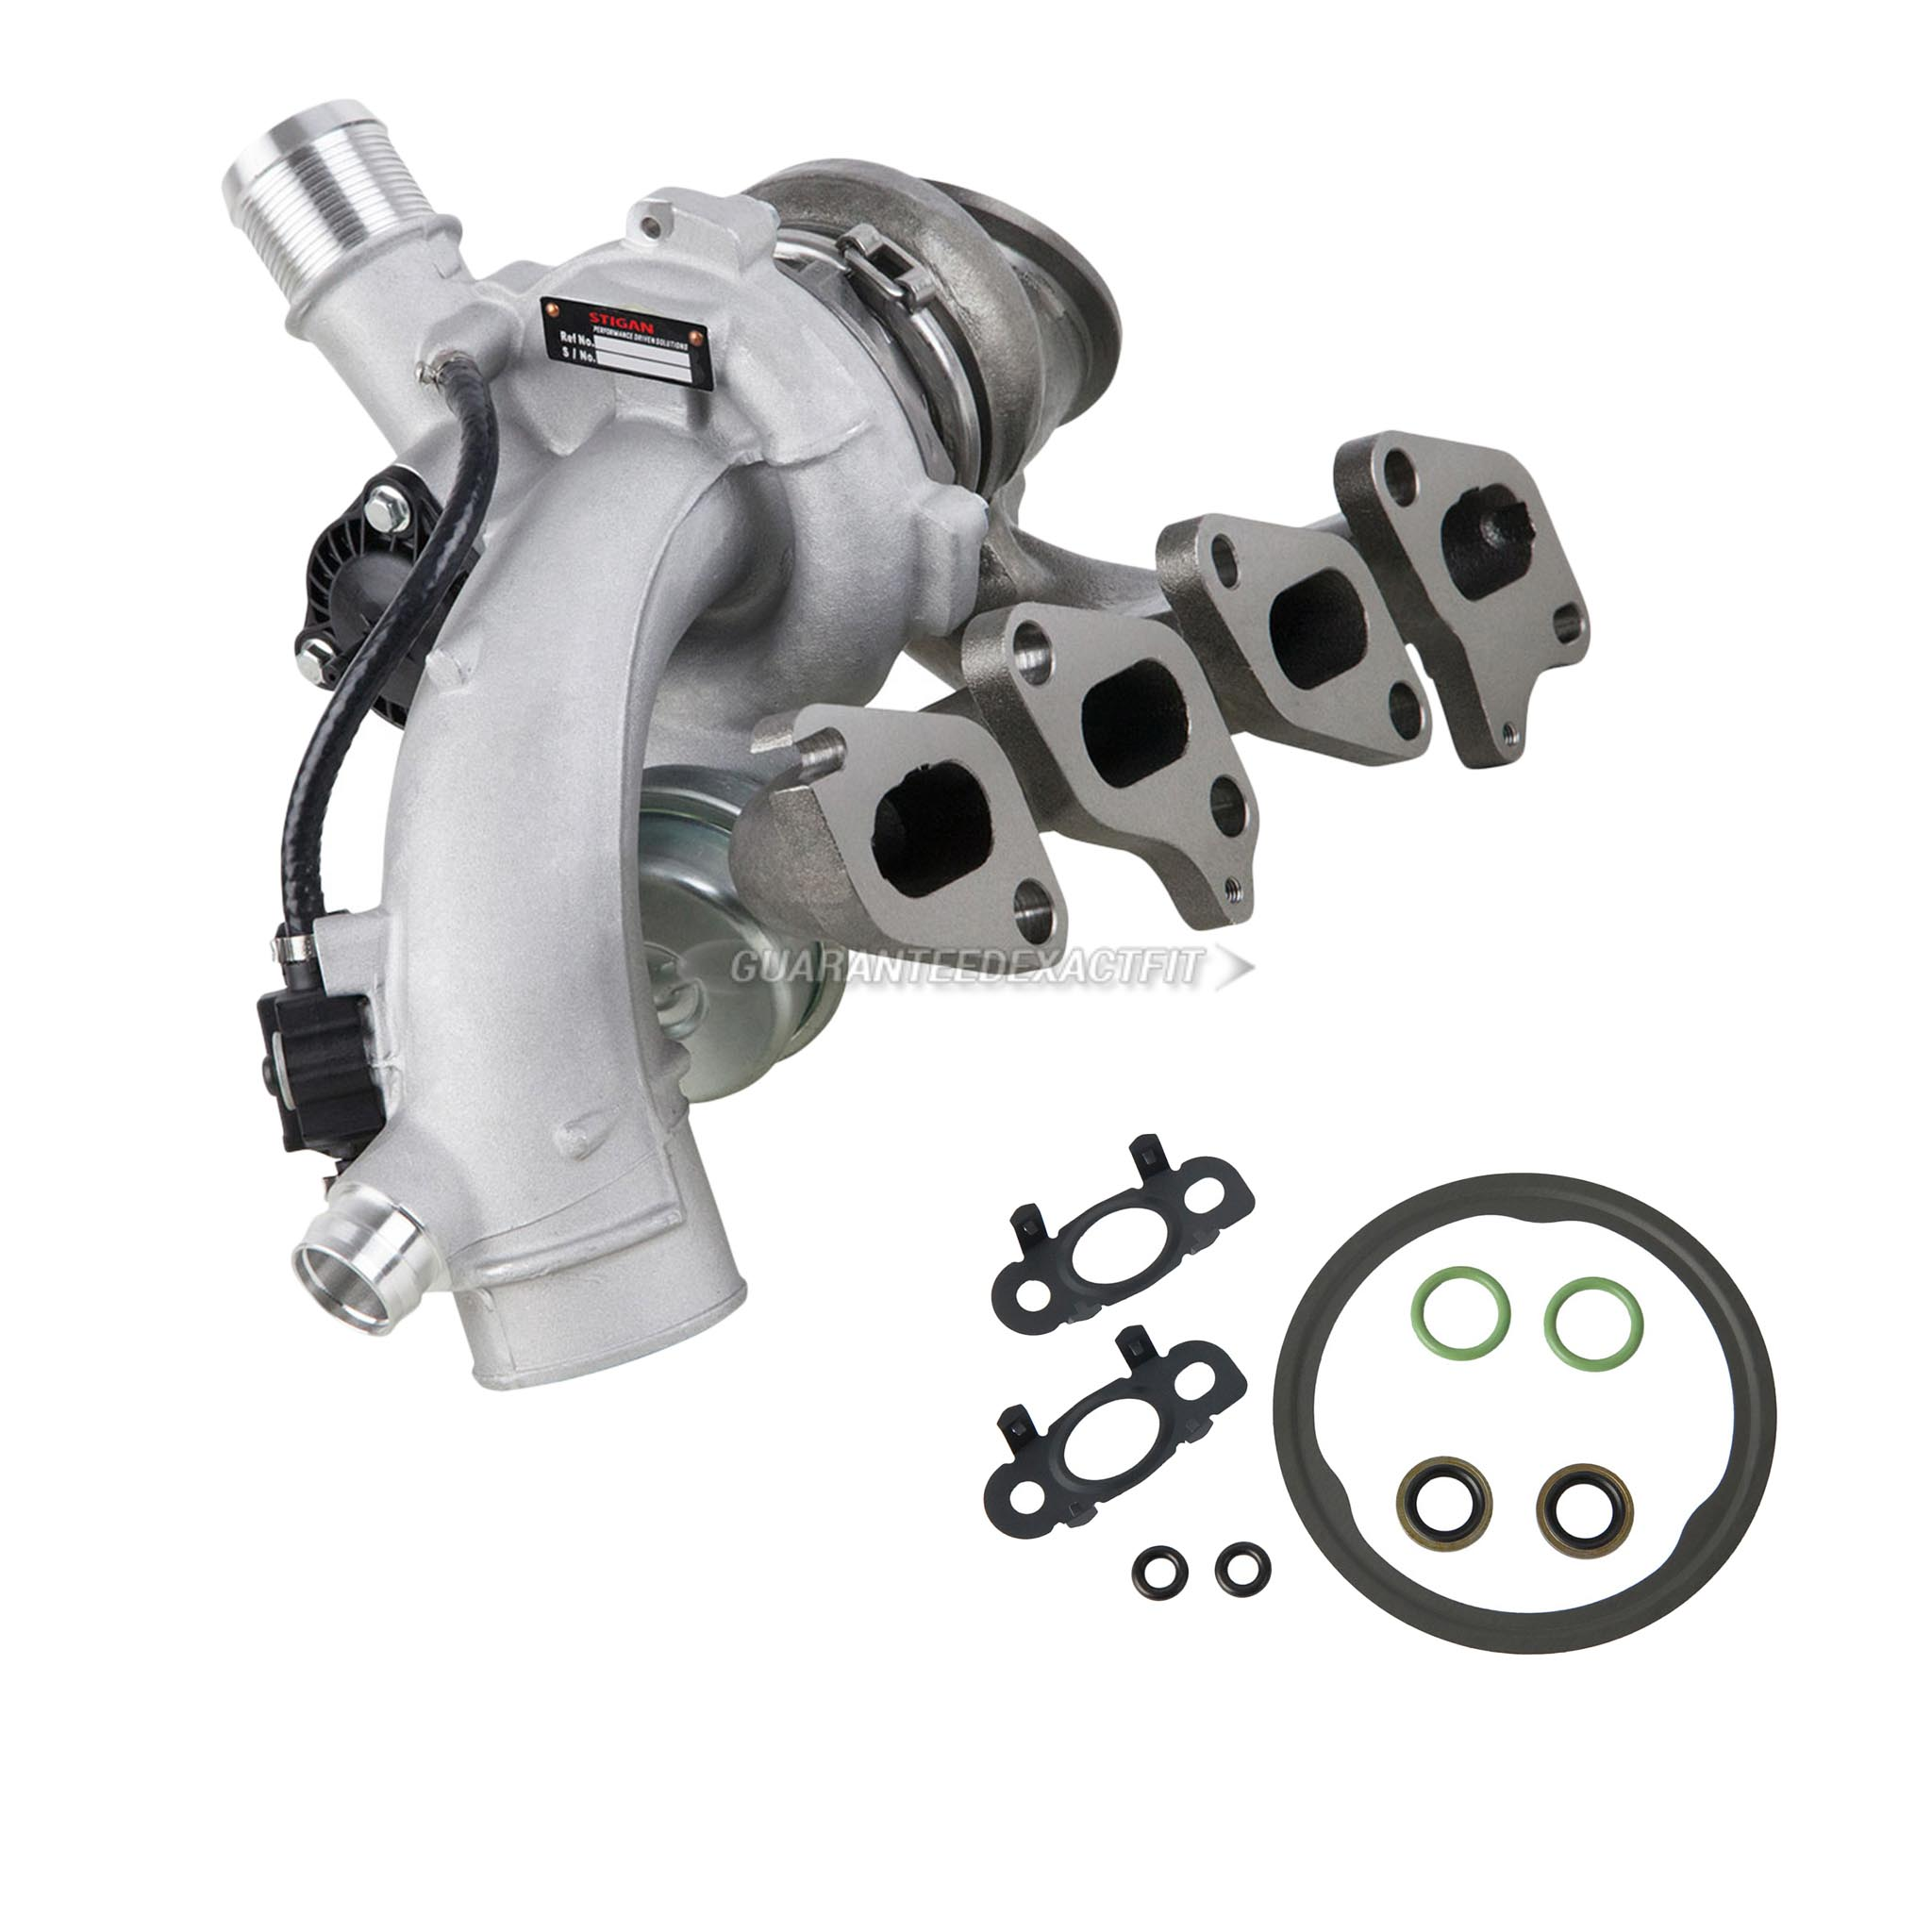 BuyAutoParts 40-82774M12 Turbocharger and Installation Accessory Kit